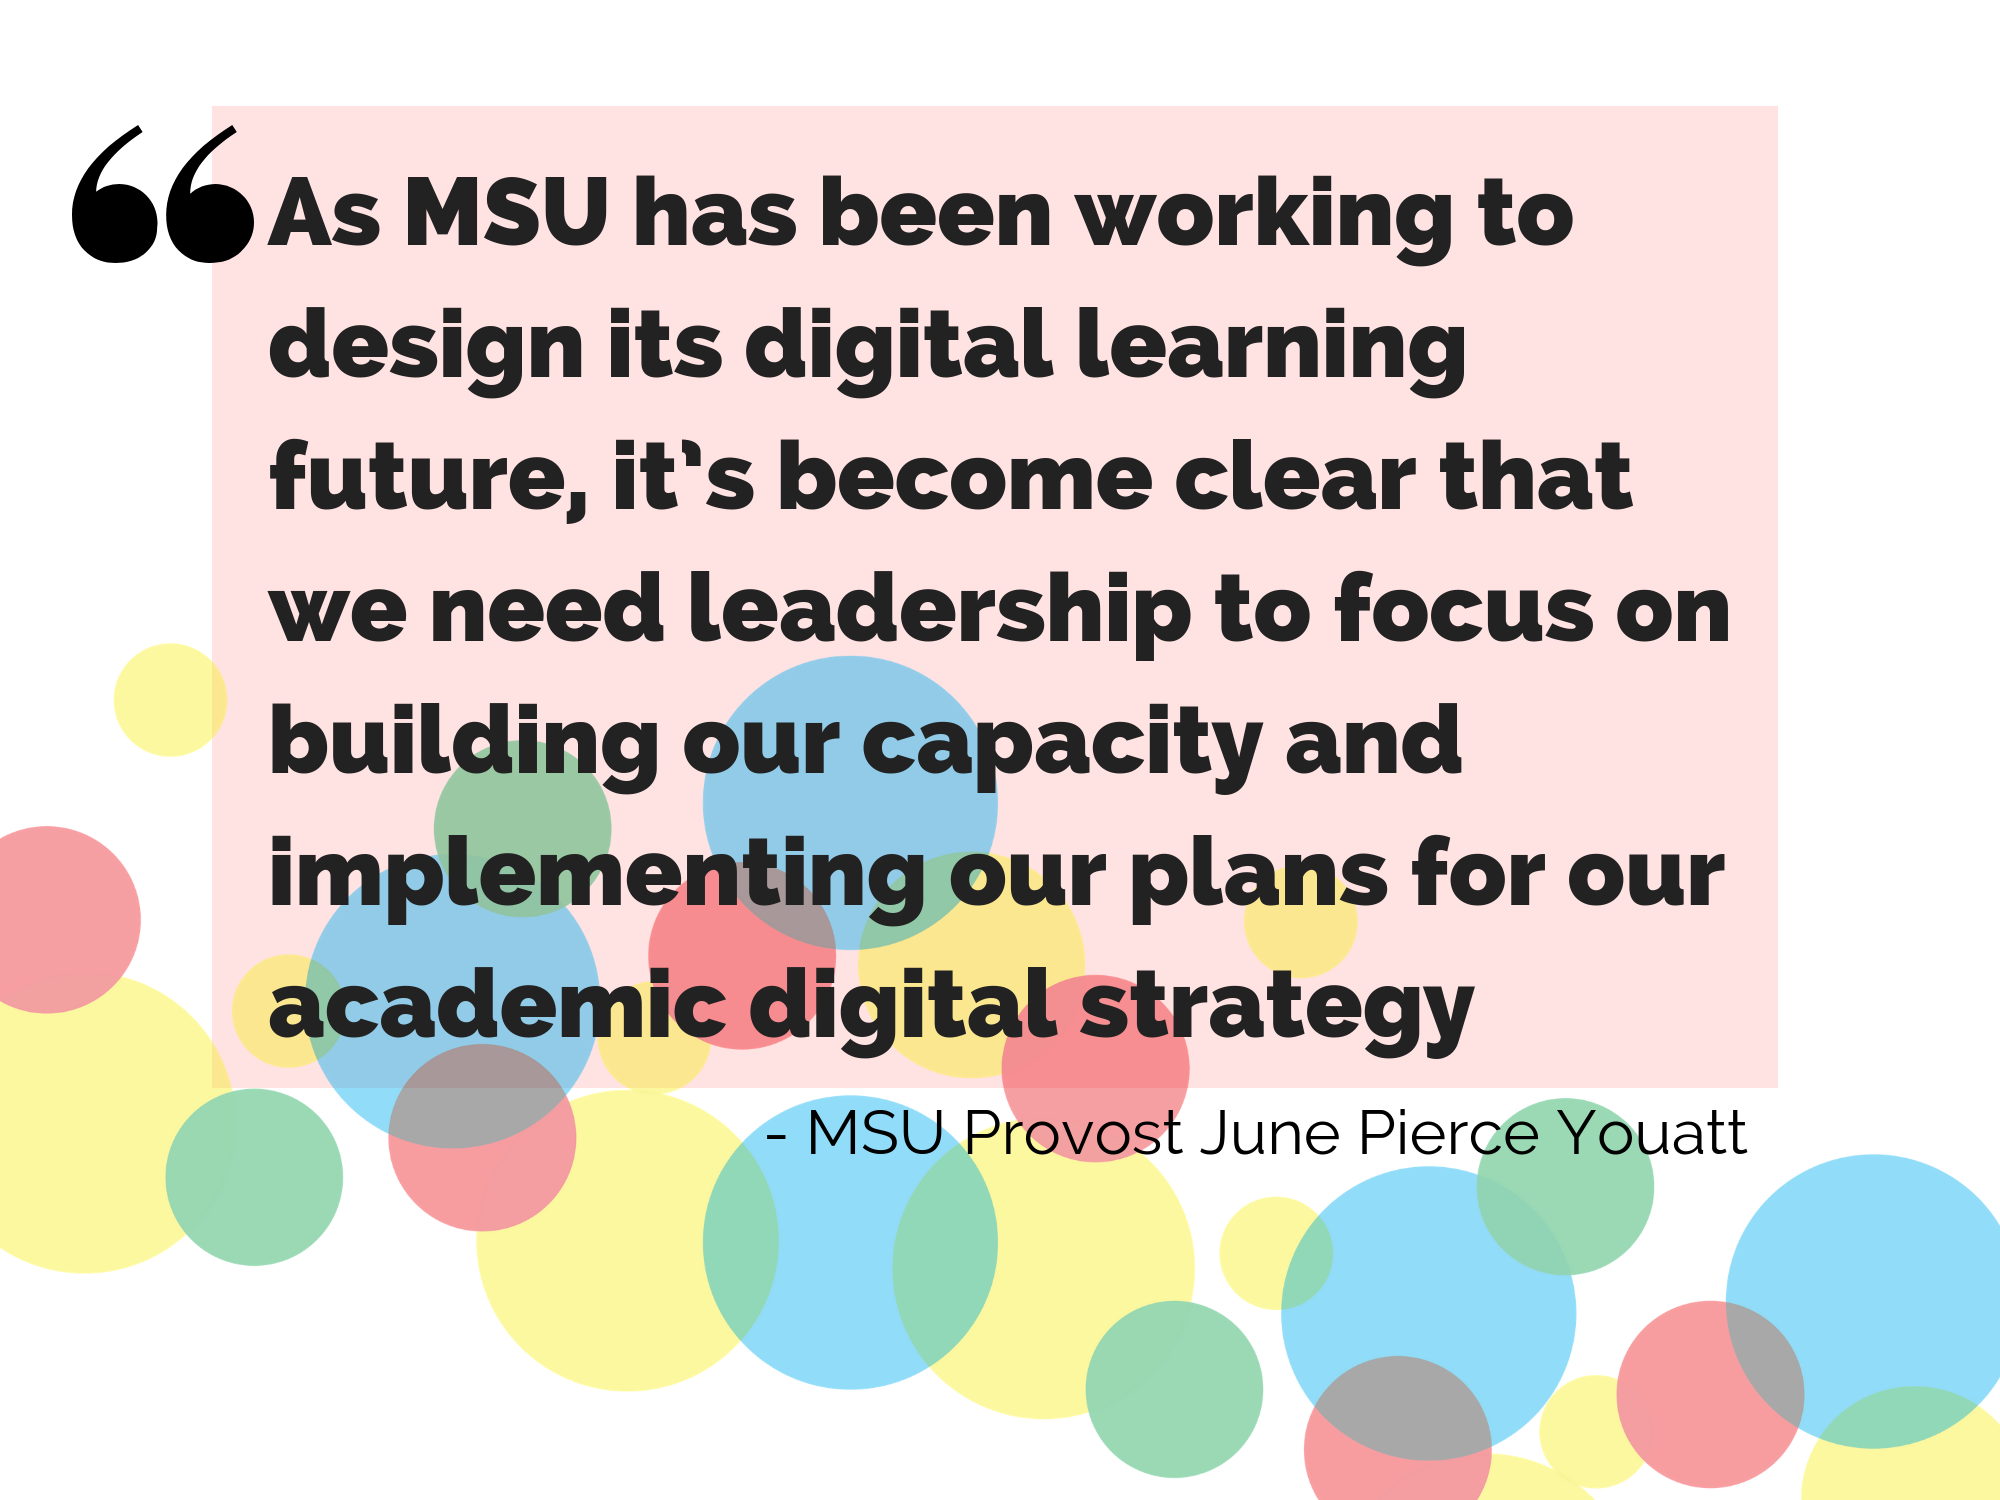 As MSU has been working to design its digital learning future, it's become clear that we need leadership to focus on building our capacity and implementing our plans for our academic digital strategy. Quotation by MSU Provost June Pierce Youatt